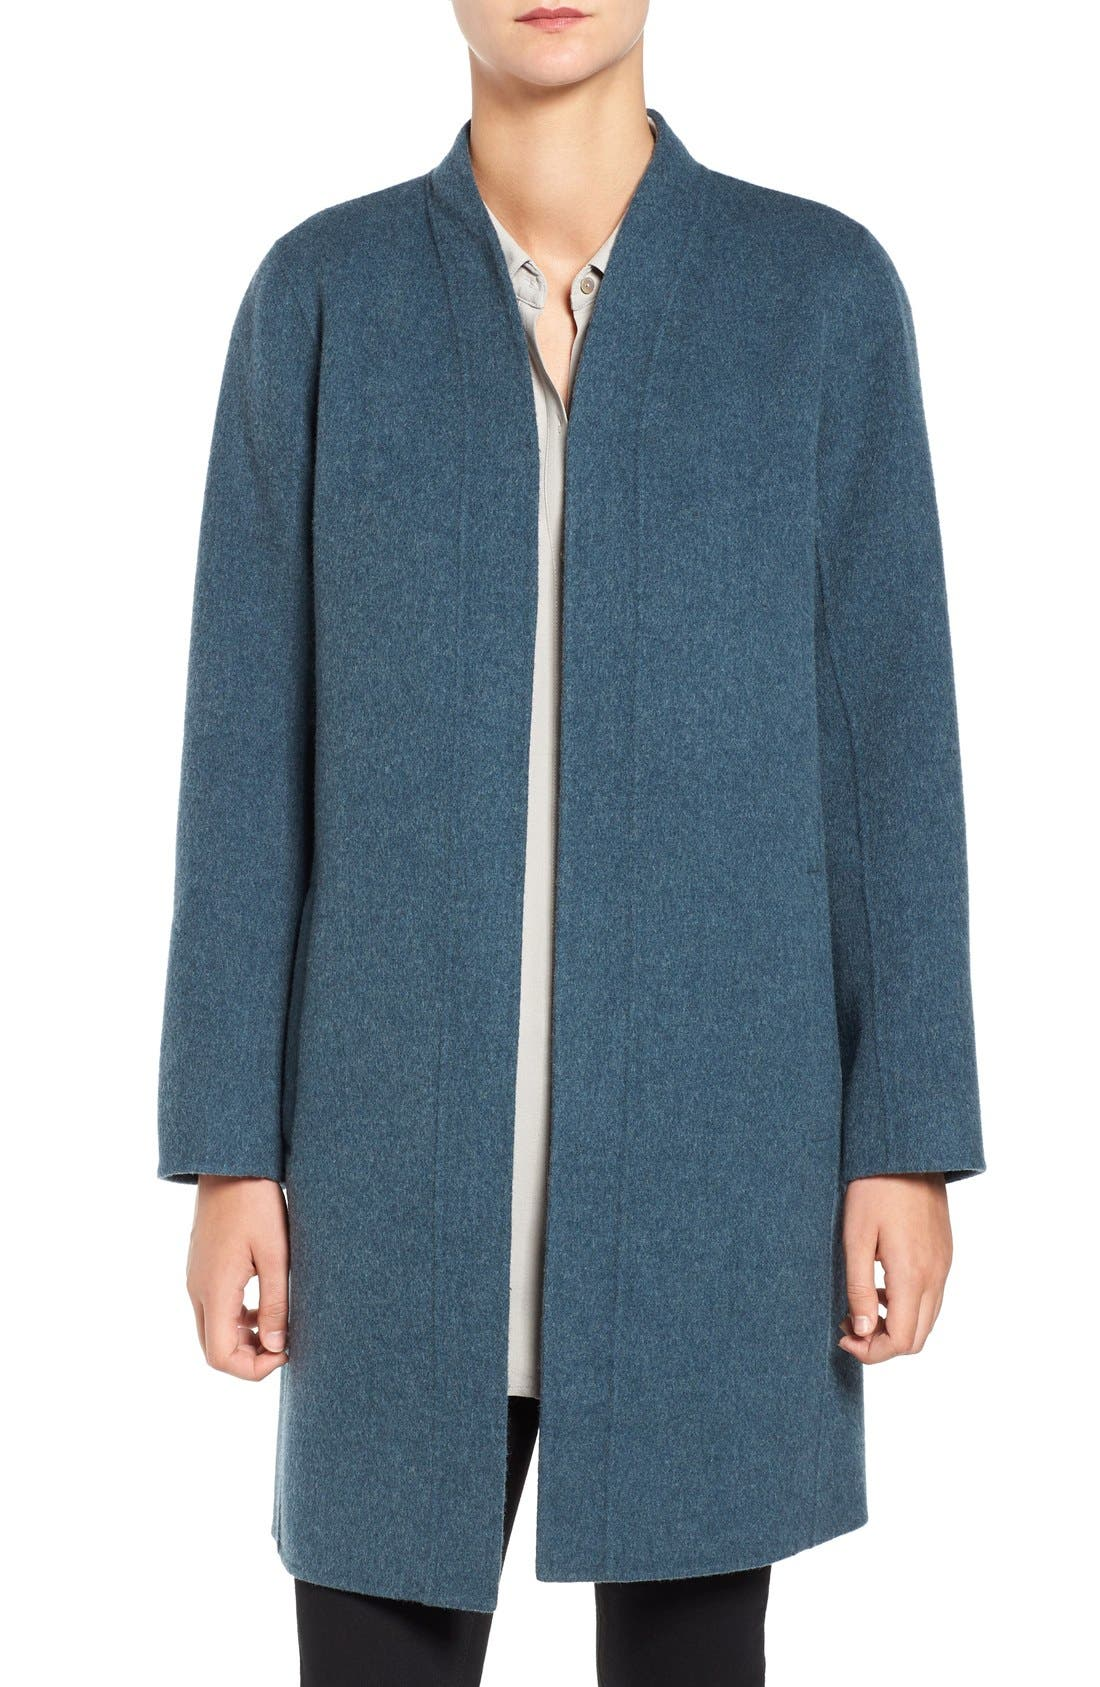 Double Face Brushed Wool Blend Kimono Jacket,                         Main,                         color, Fir